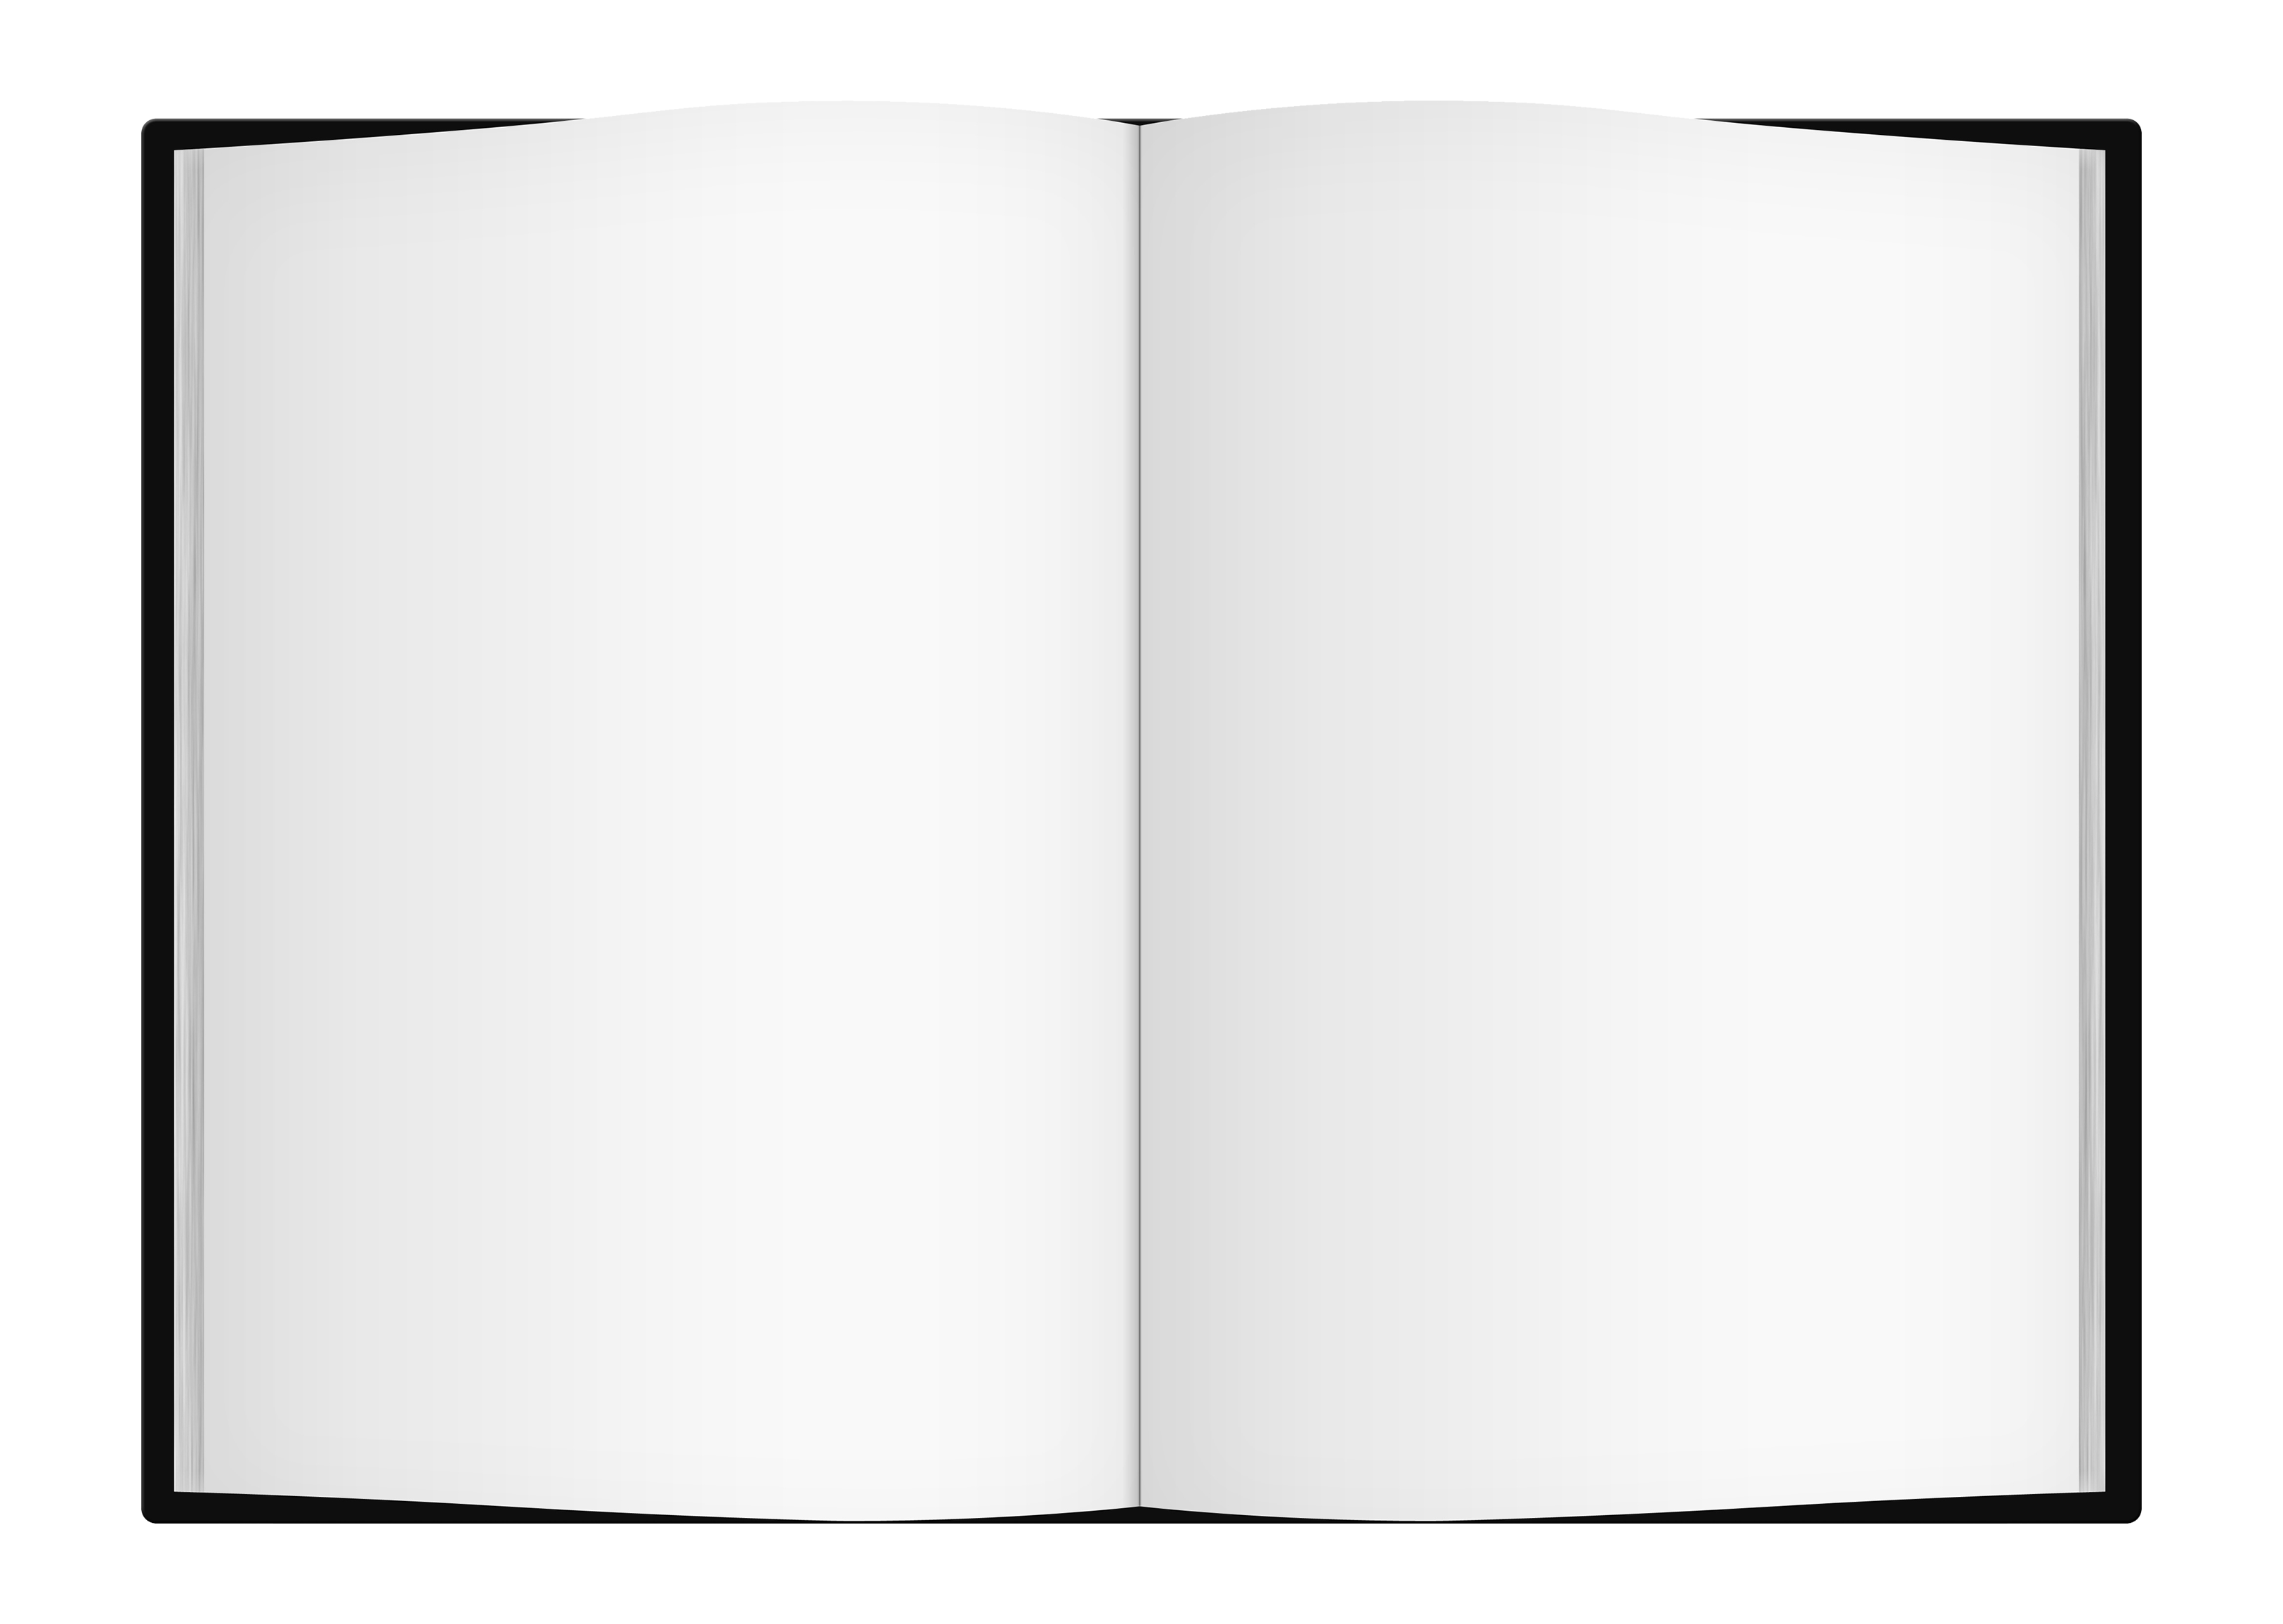 Blank png background. Book image purepng free